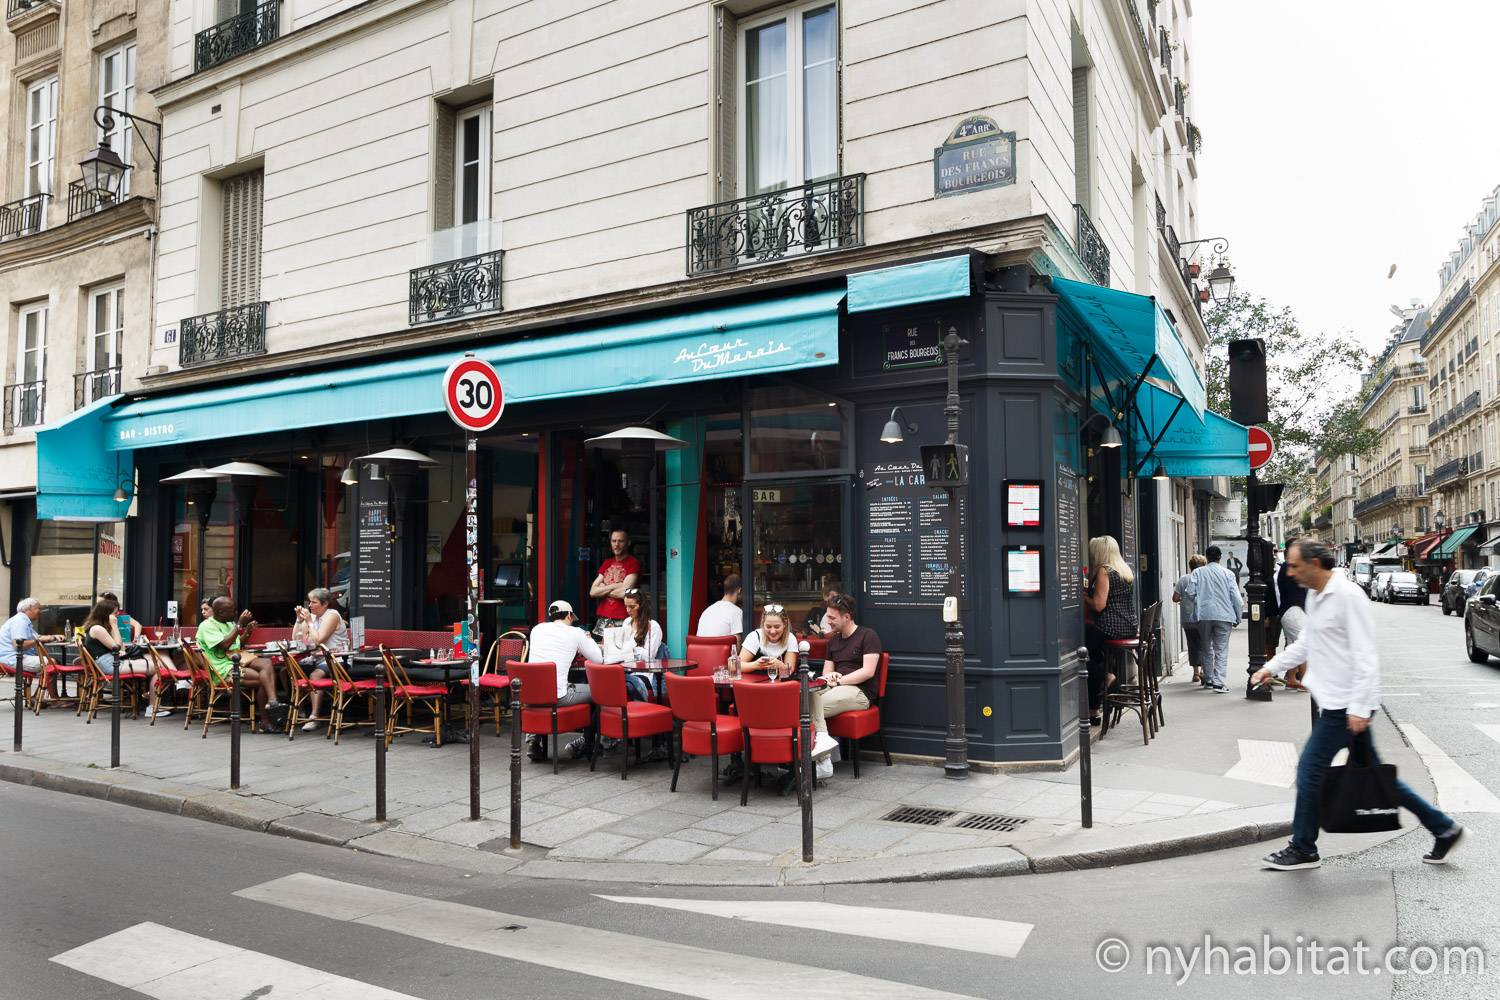 Image of street-side café in Le Marais.